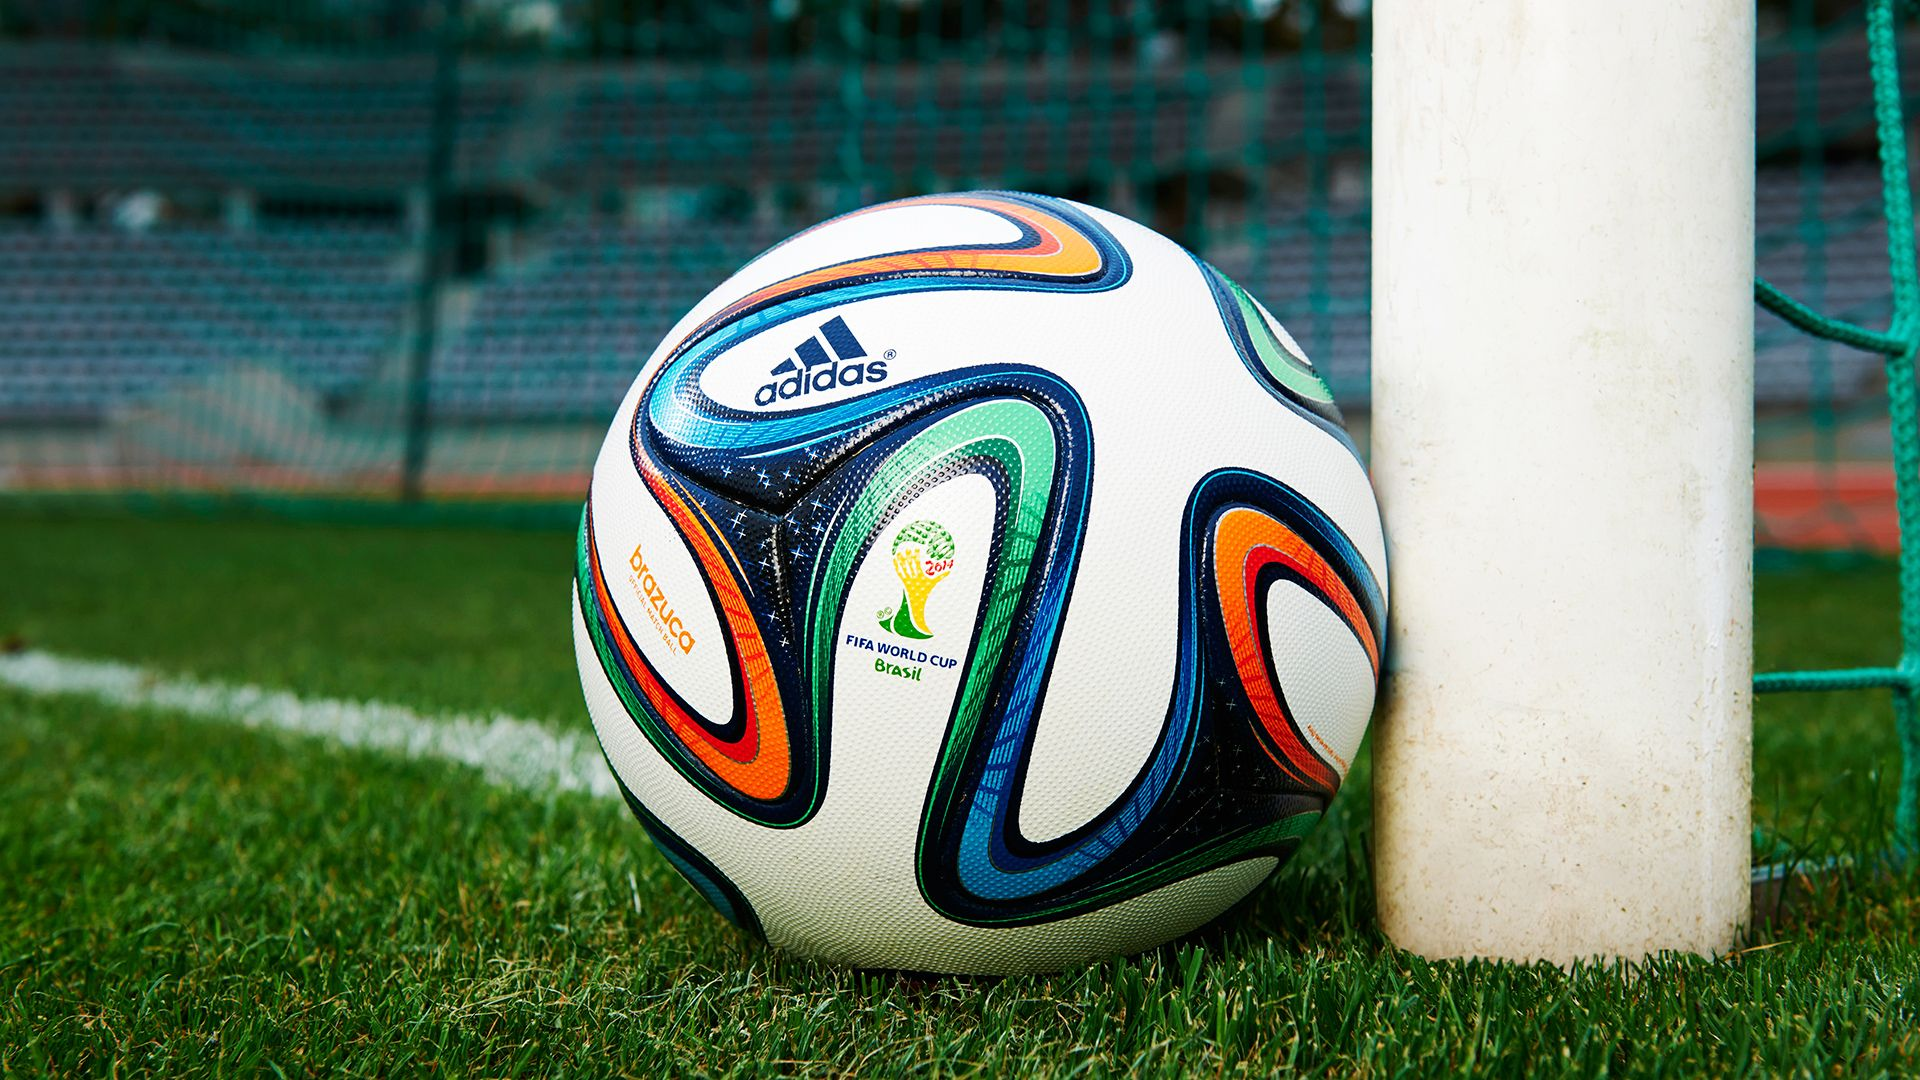 Soccer Ball Wallpaper: Brazuca Ball In Addition Goalposts Image Photo Free